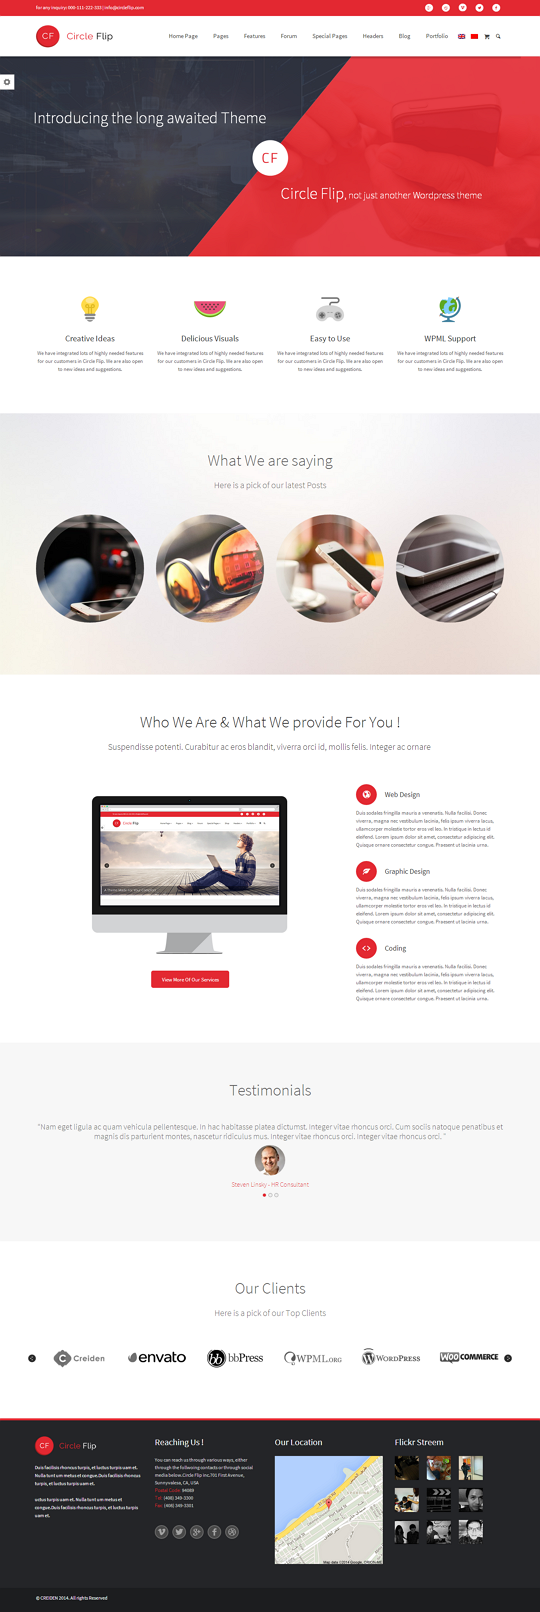 Clrcle Flip is flat, clean, sleek responsive Premium WordPress Theme.Circle Flip is our latest ...